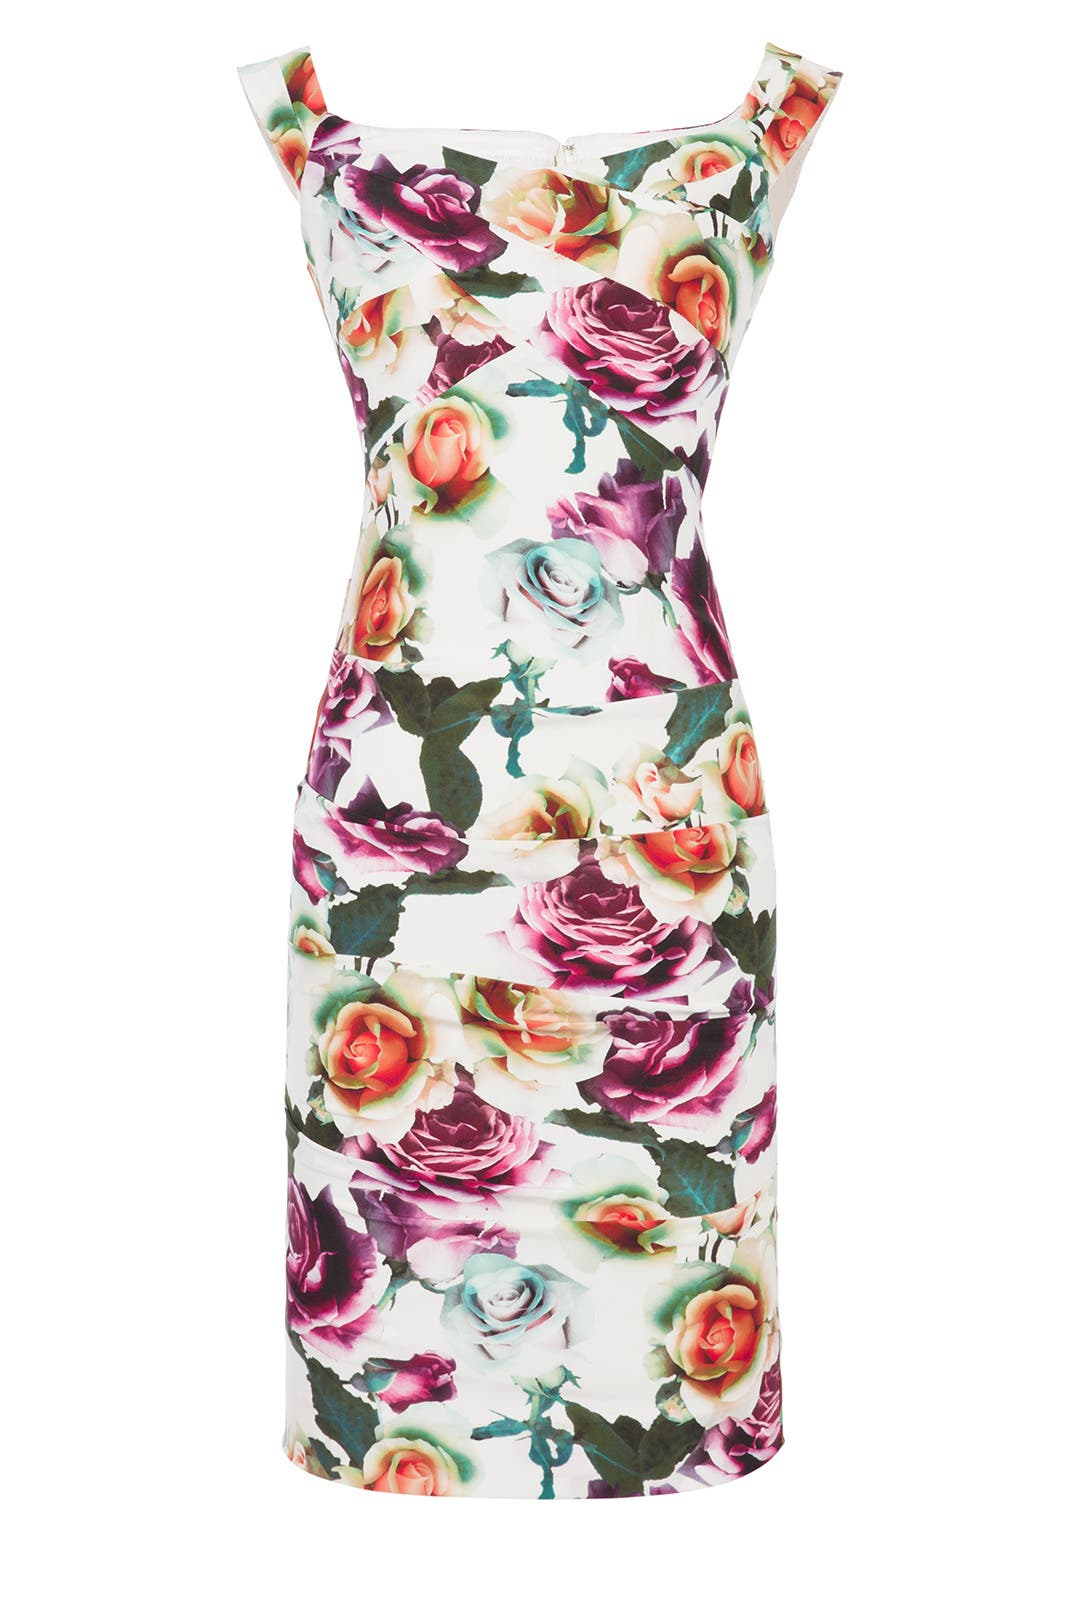 Garden Bouquet Dress by Nicole Miller for 55 75 Rent the Runway